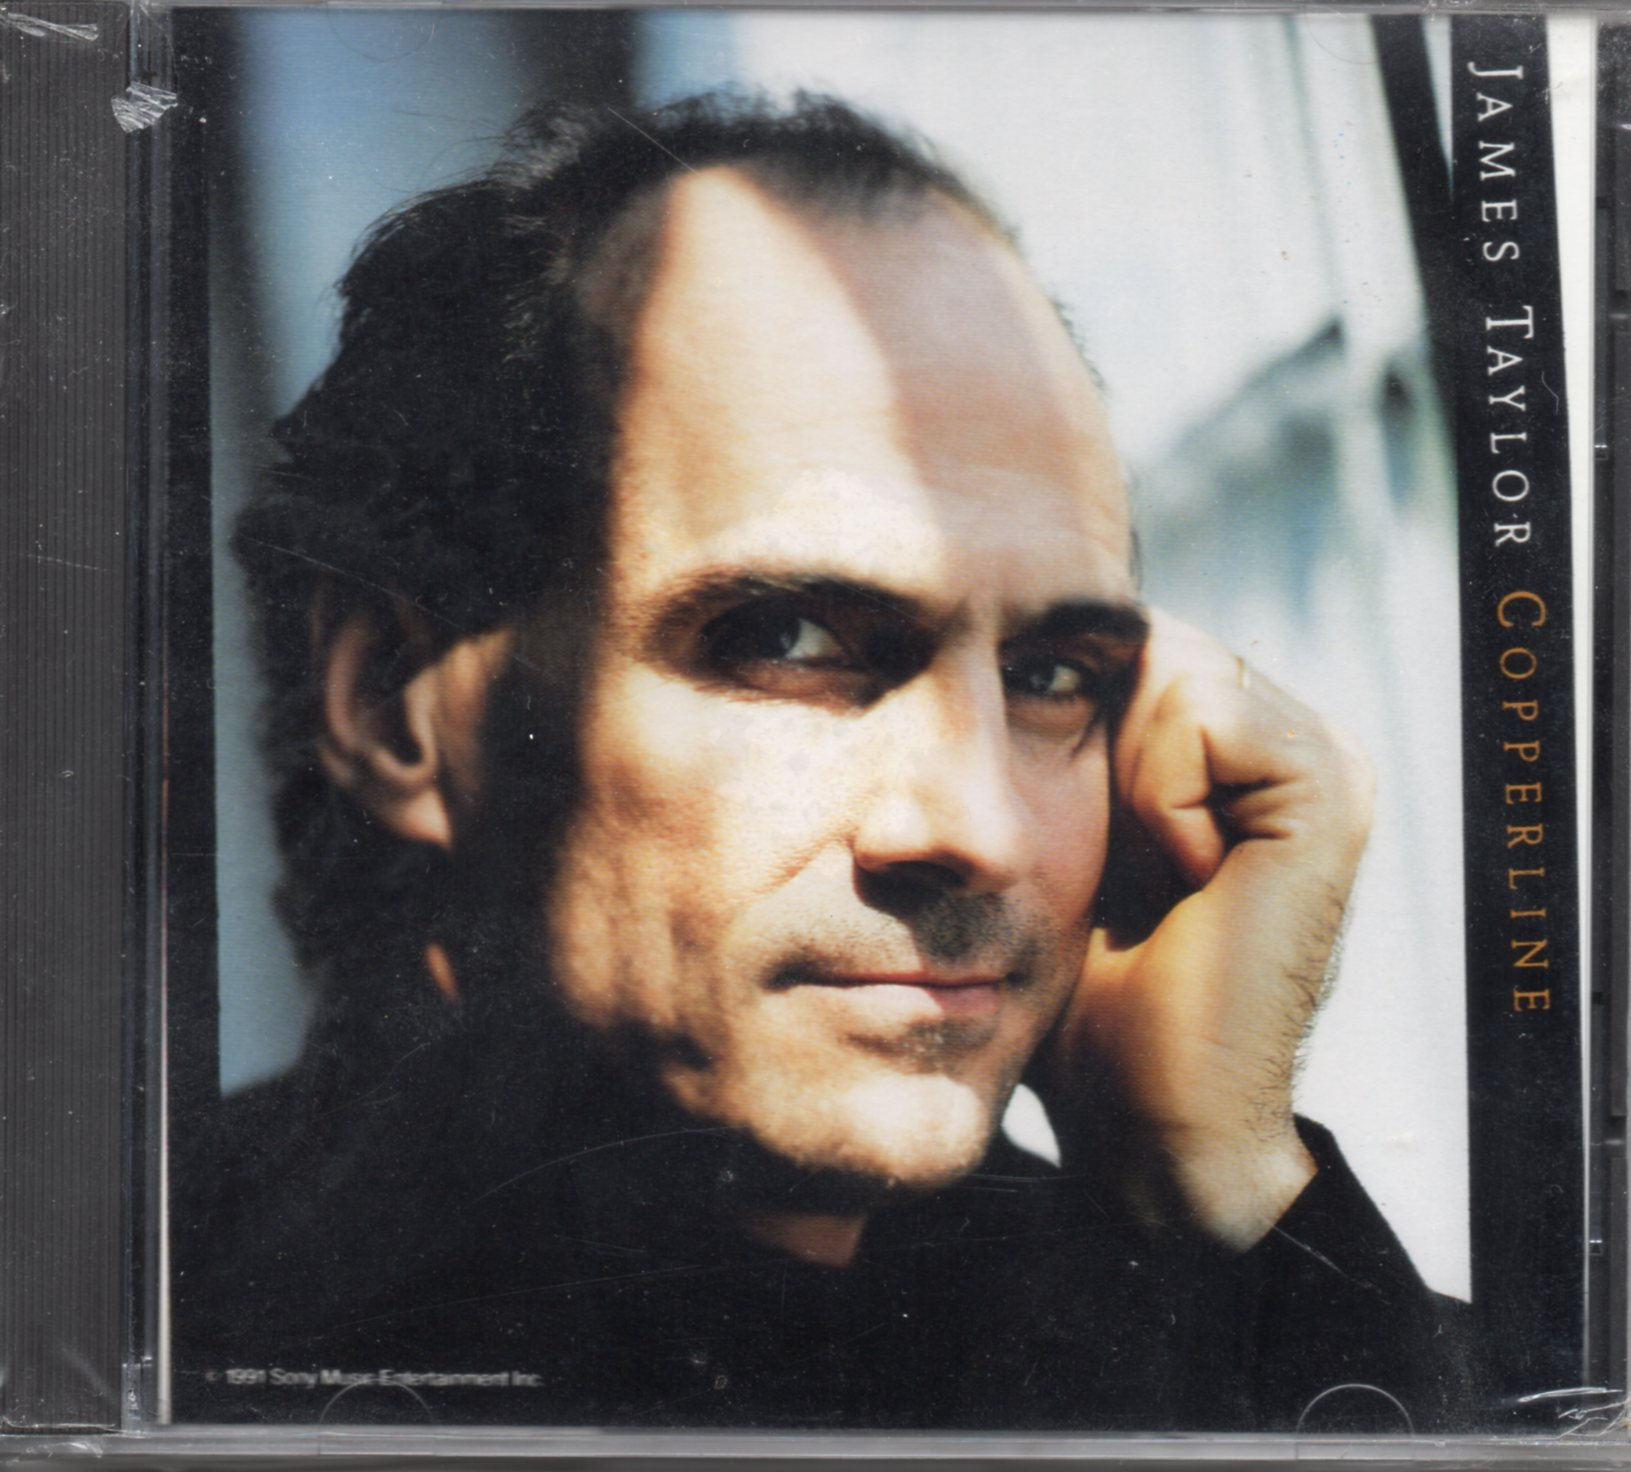 JAMES TAYLOR - Copperline Promo 1-track Jewel case - CD Maxi